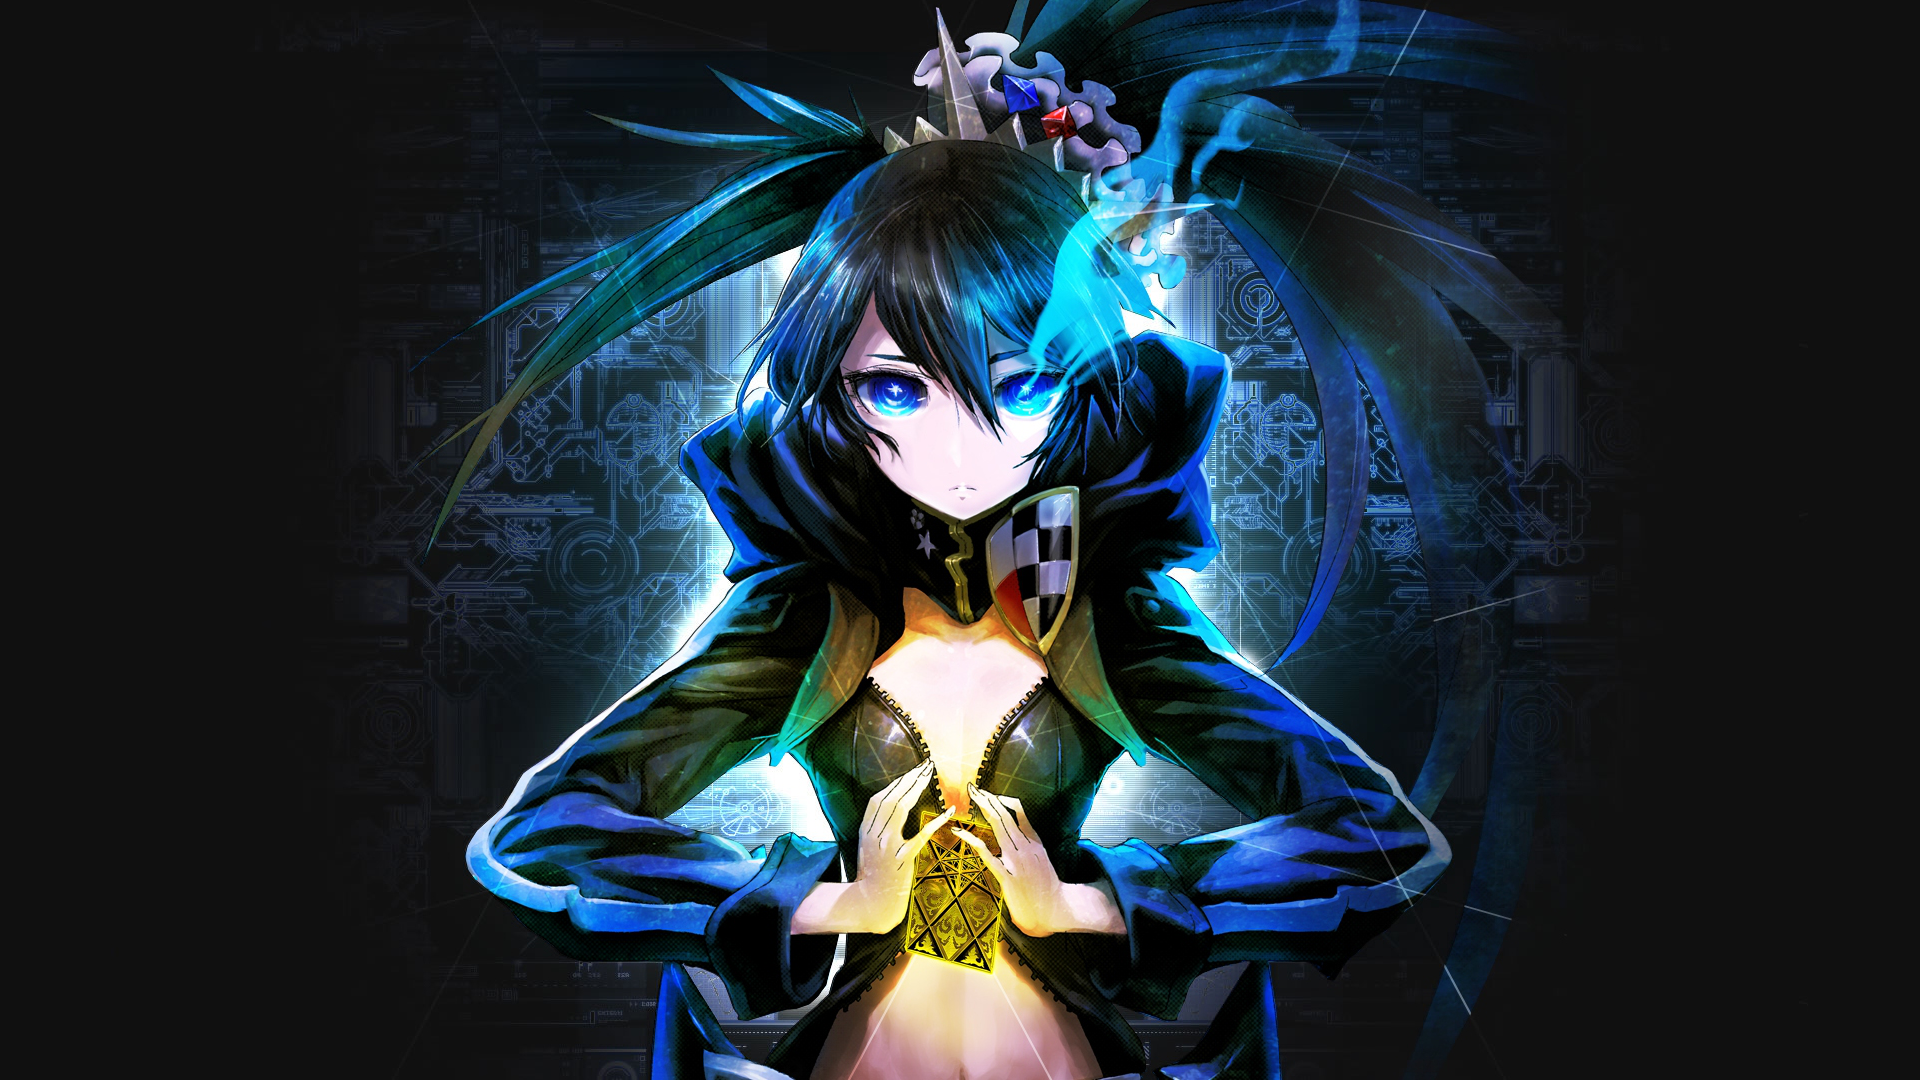 Black rock shooter anime wallpaper 1920x1080 69610 - 1920x1080 wallpapers anime ...